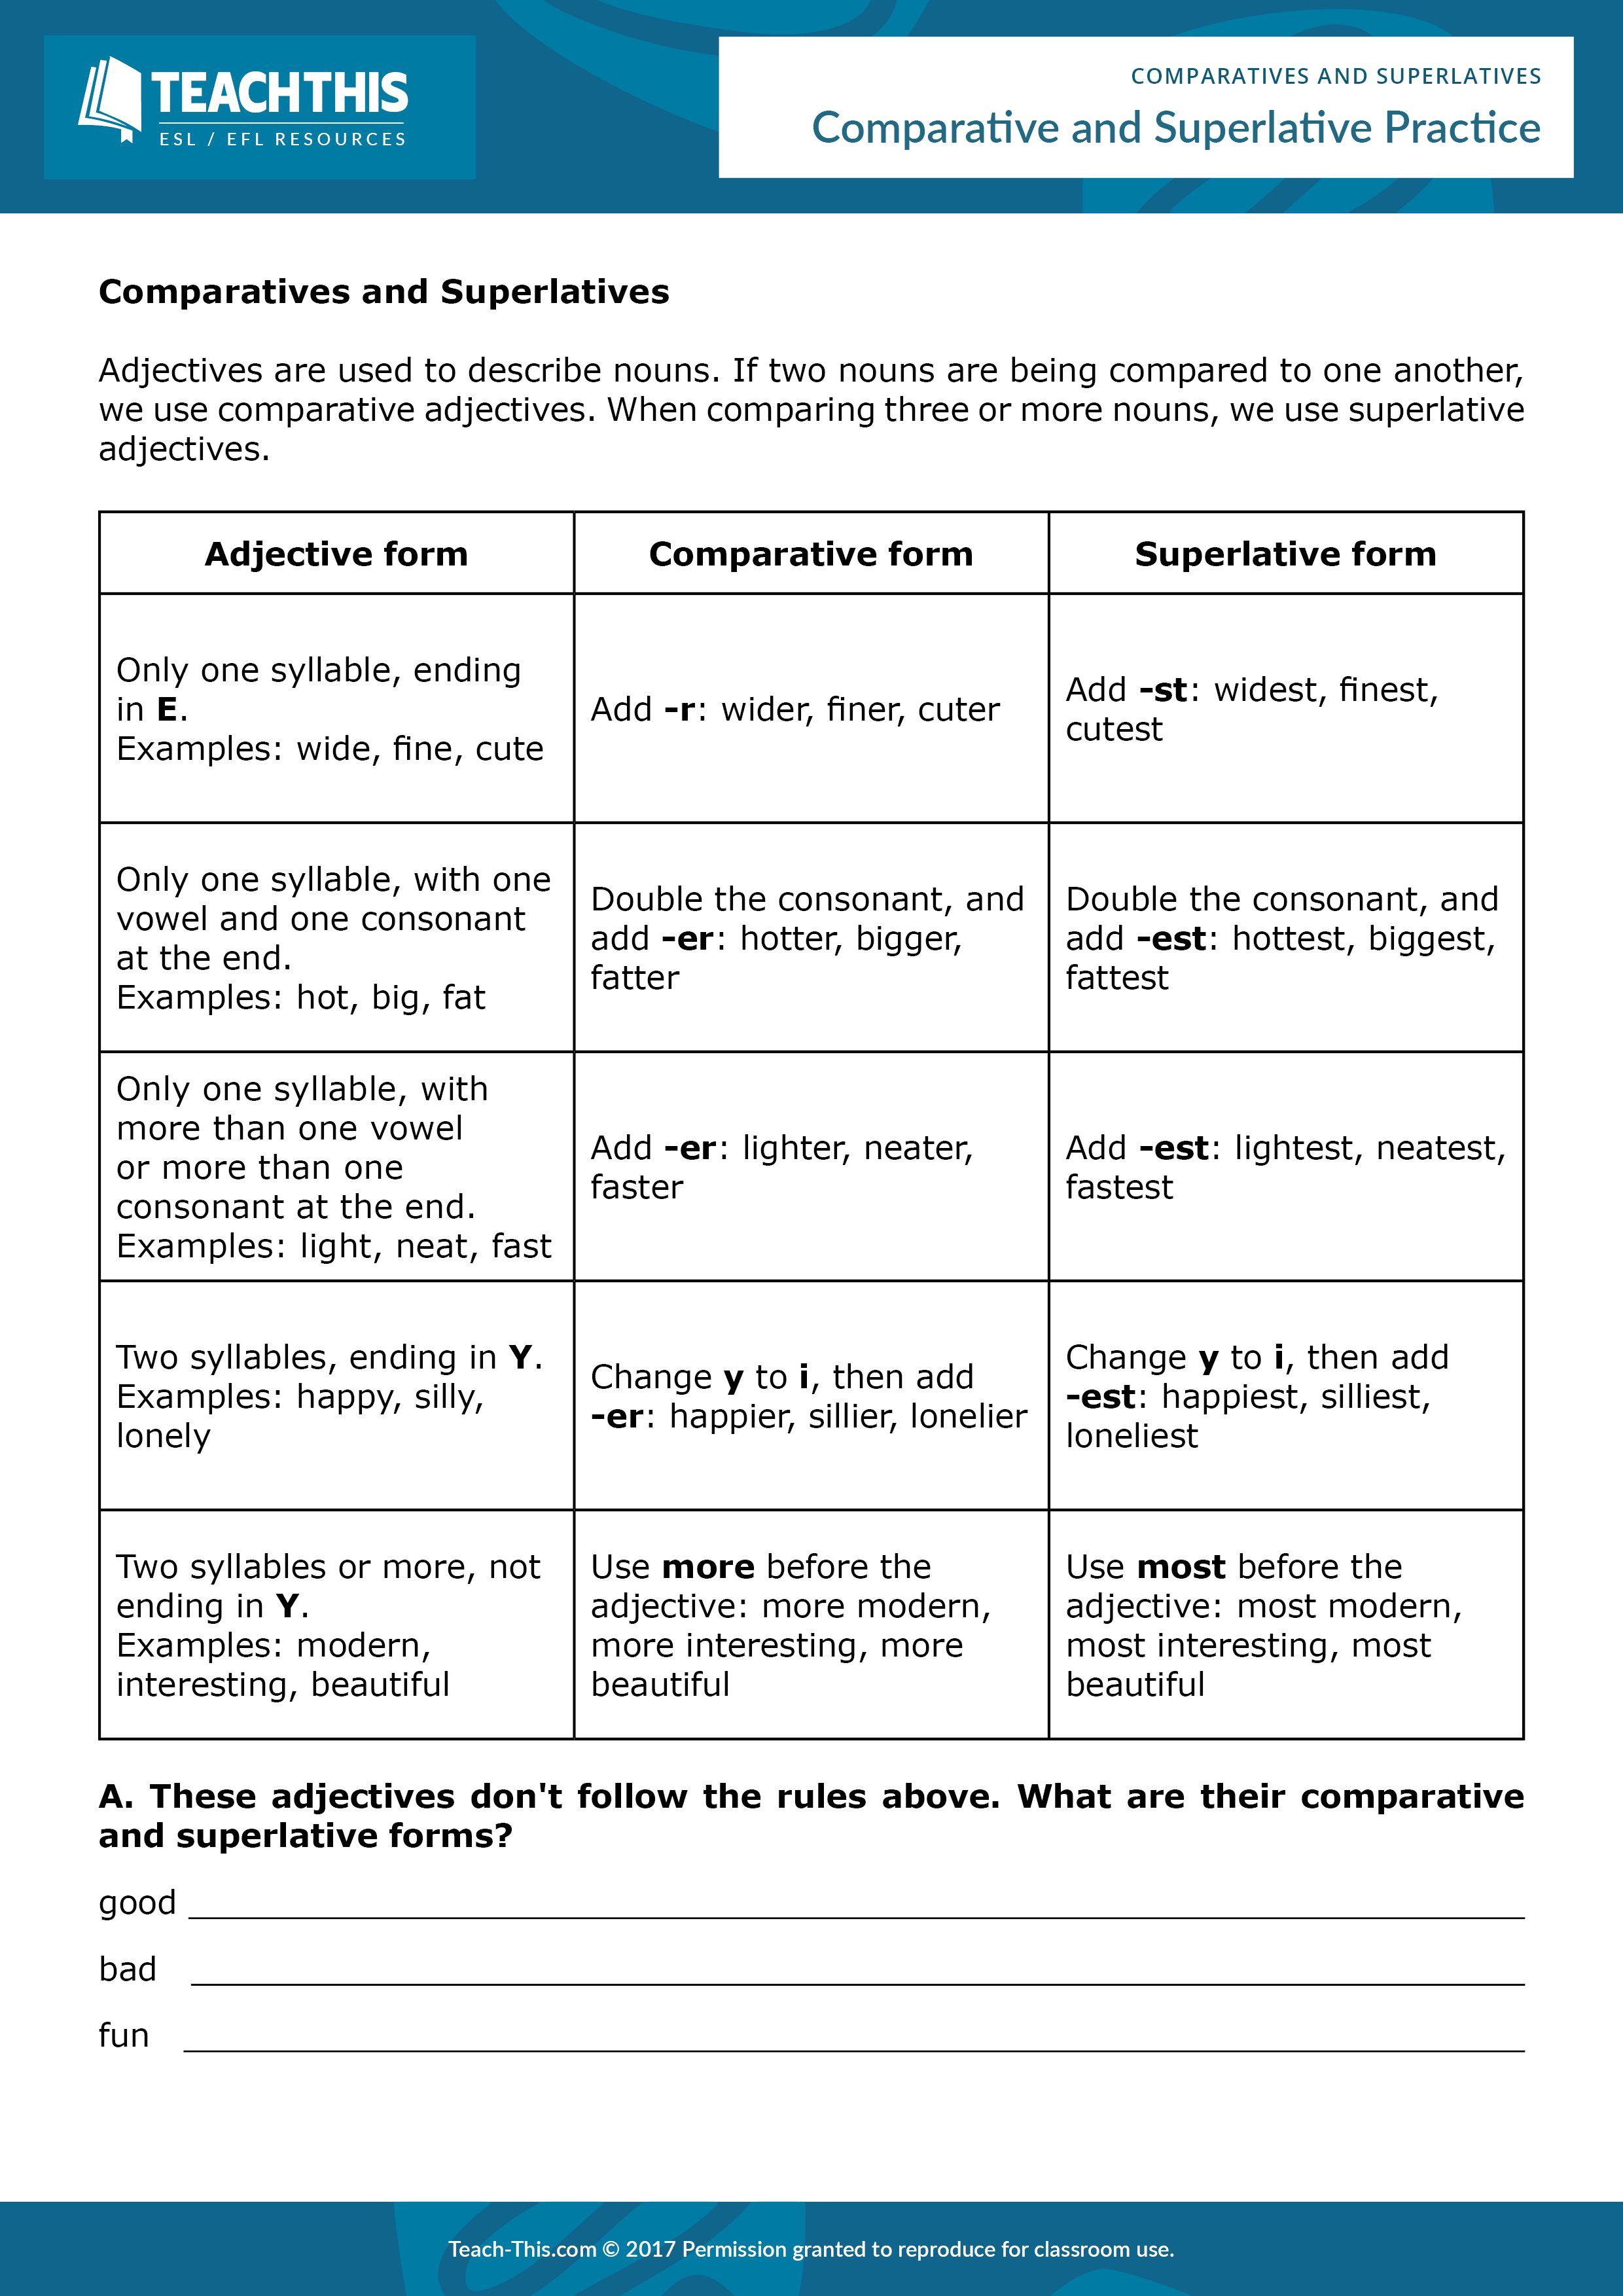 worksheet Comparative Superlative Worksheet comparatives and superlatives adjective form worksheets this entertaining five page lesson is ideal for teaching or reviewing comparative superlative adjective